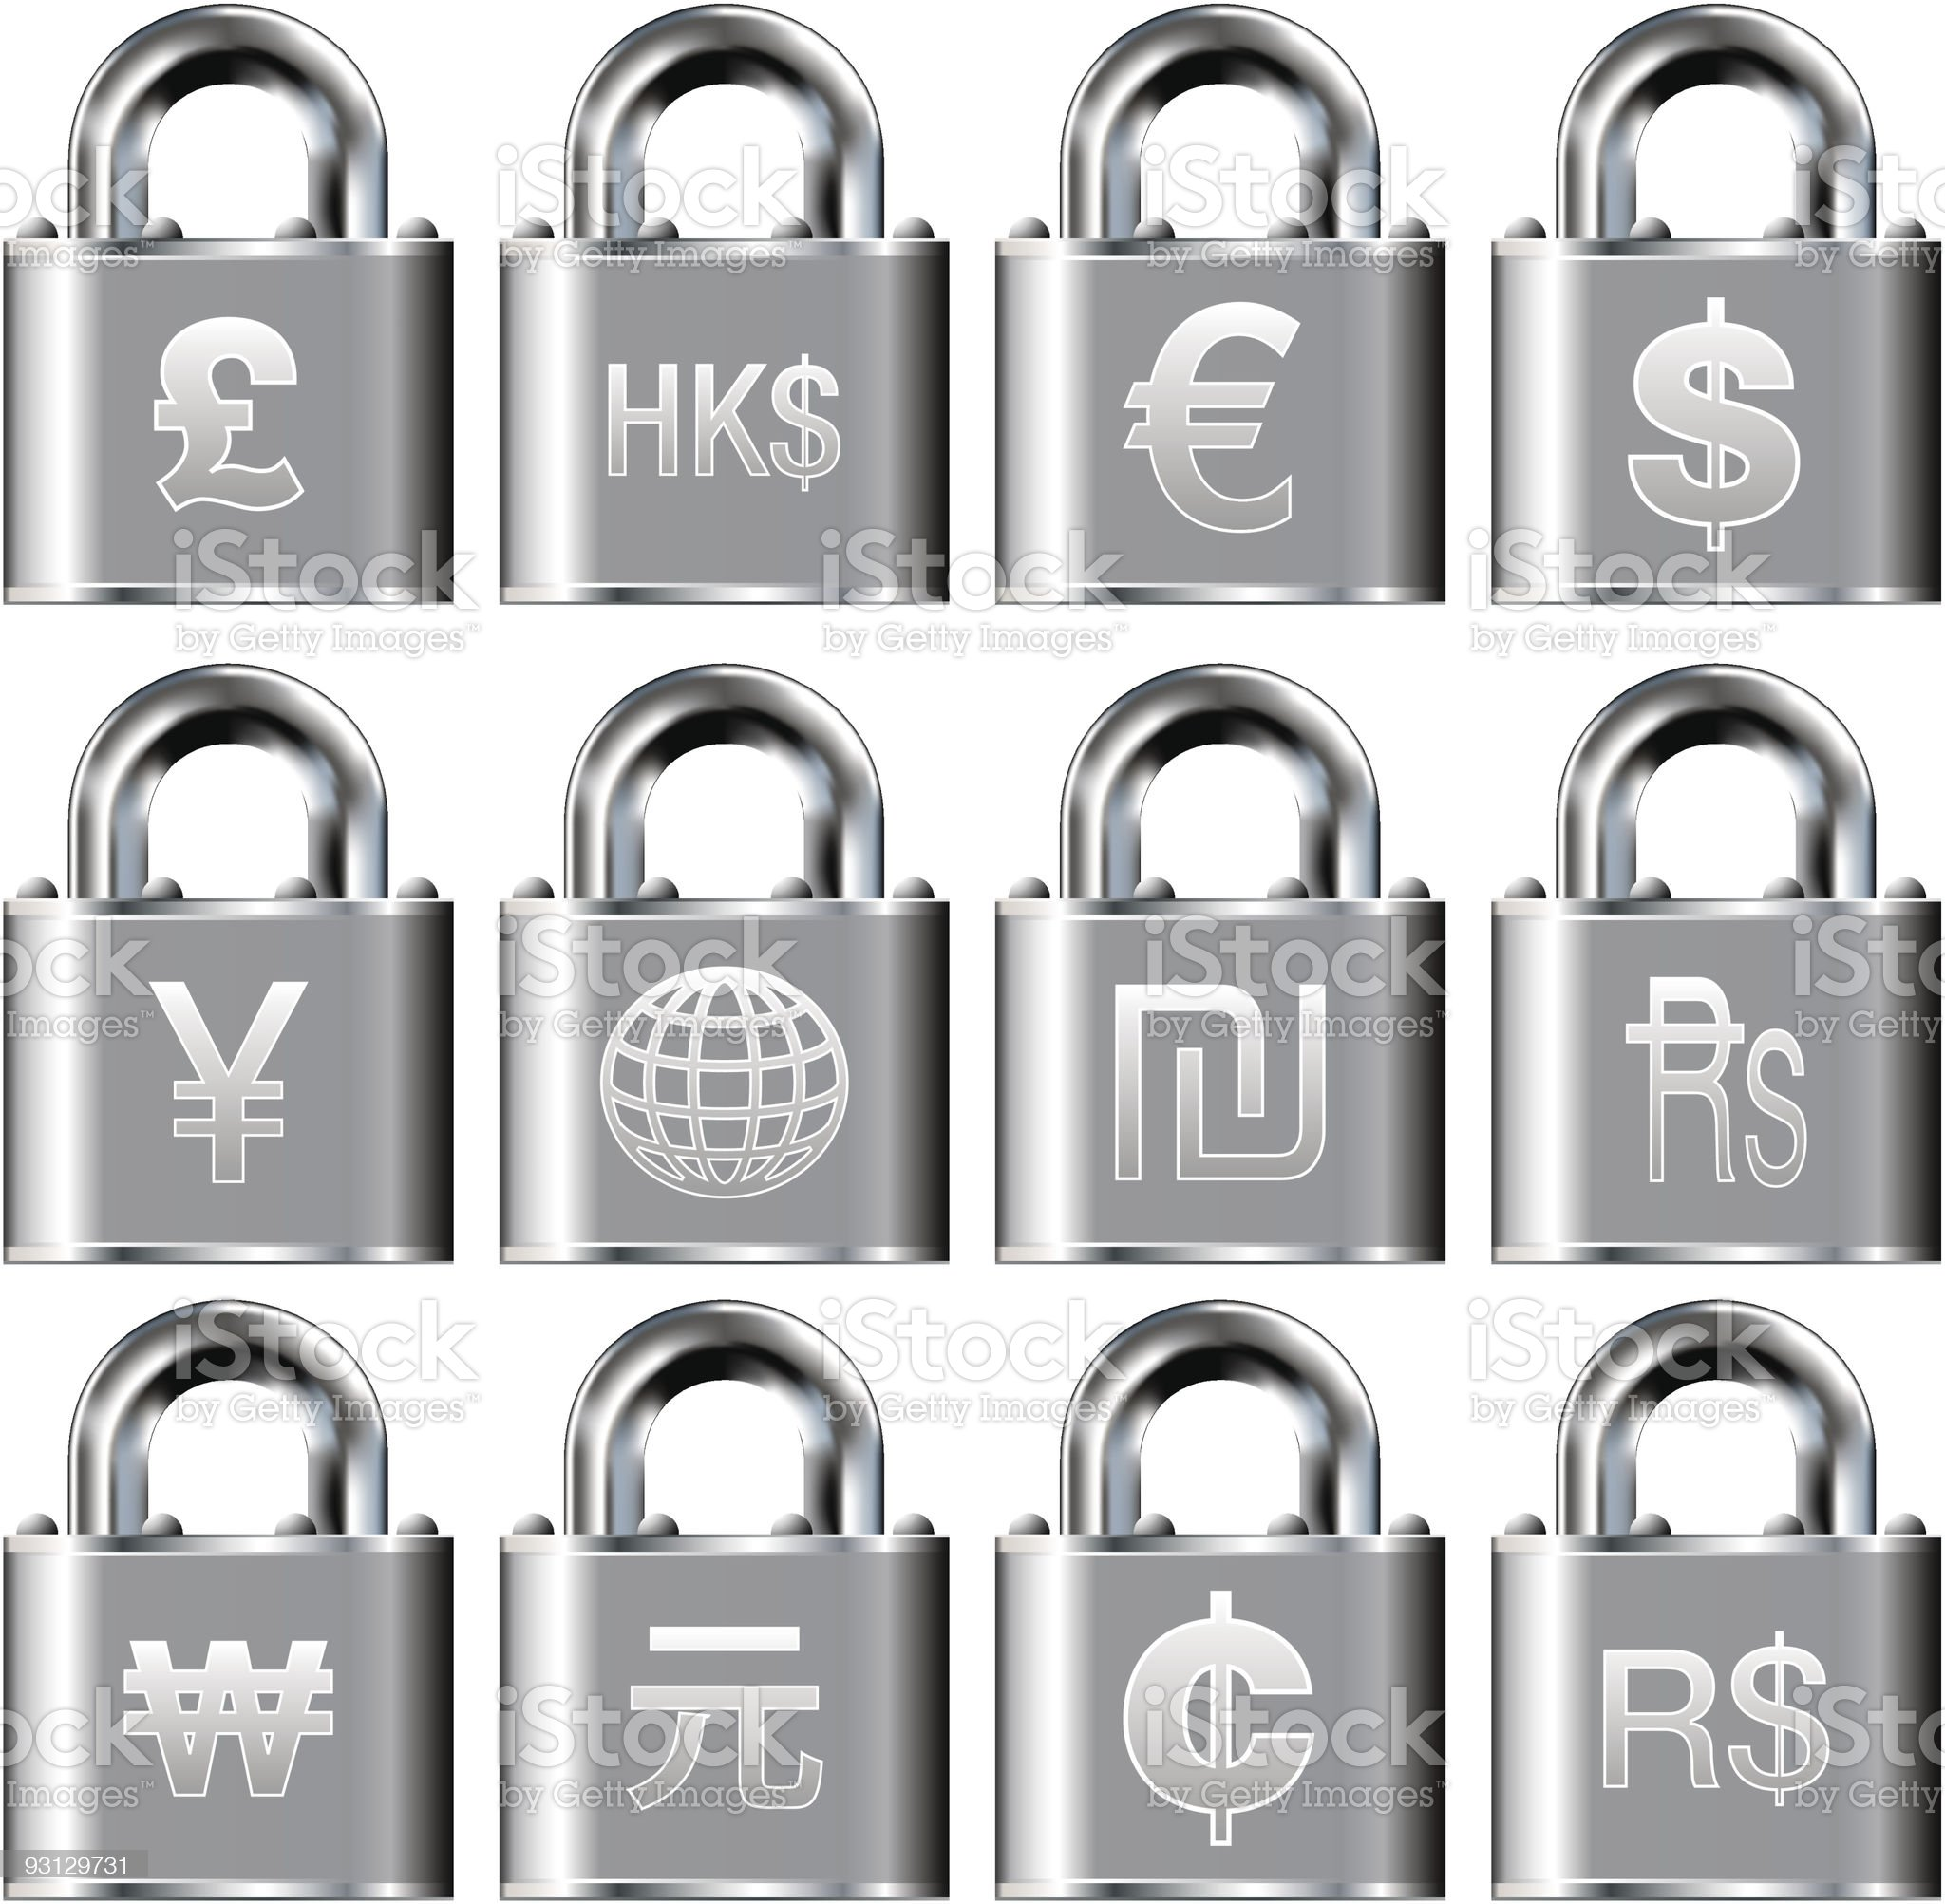 International currency symbol icons on security padlock buttons royalty-free stock vector art